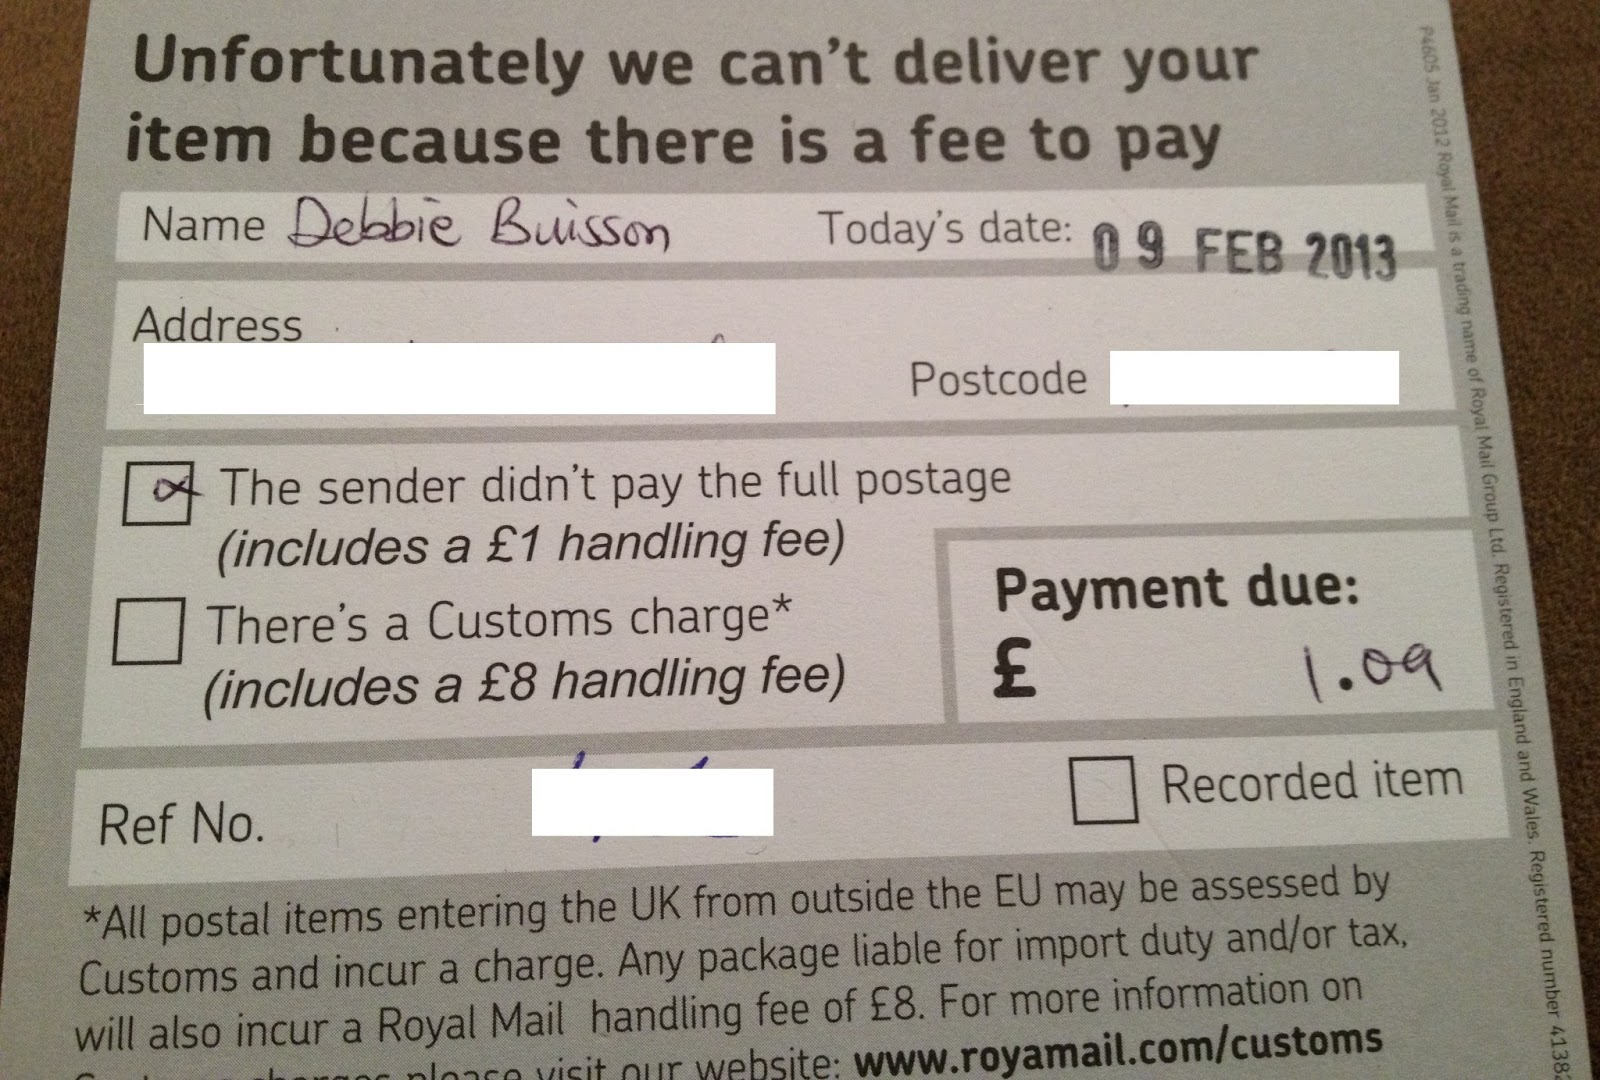 Royal Mail is introducing a new fee of £ for a letter with insufficient postage, and £2 where nothing has been paid. A flat fee of £3 will apply to a small parcel, with the new charges coming in on Monday. Under the current structure, the surcharge is £1, plus any remaining postage due.